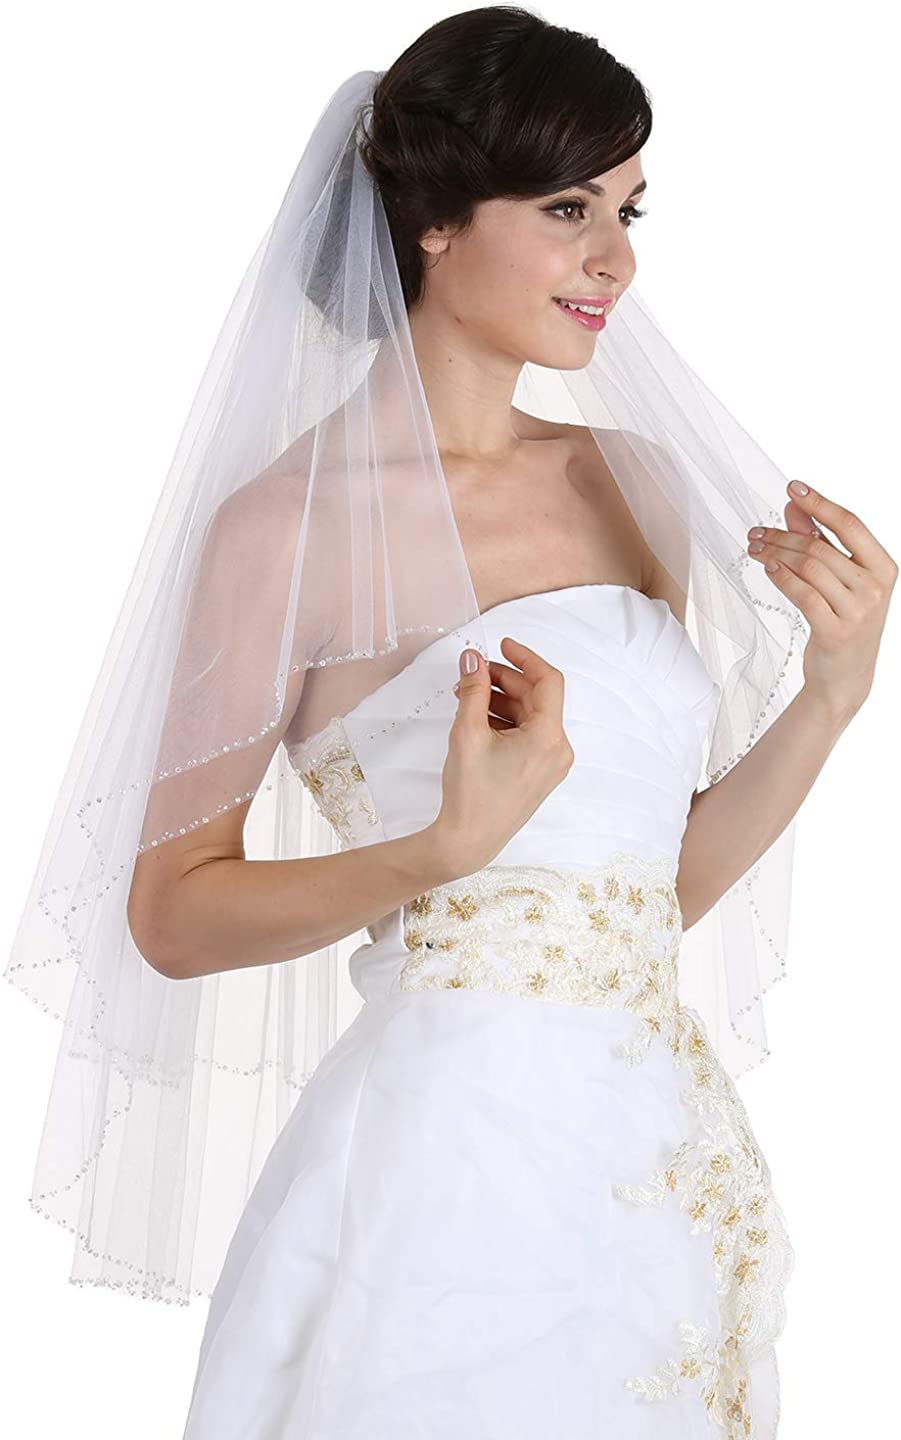 SAMKY 2T 2 Tier Handmade Clear Beaded New Orleans Outlet sale feature Mall Weddin Bridal Crystal Edge